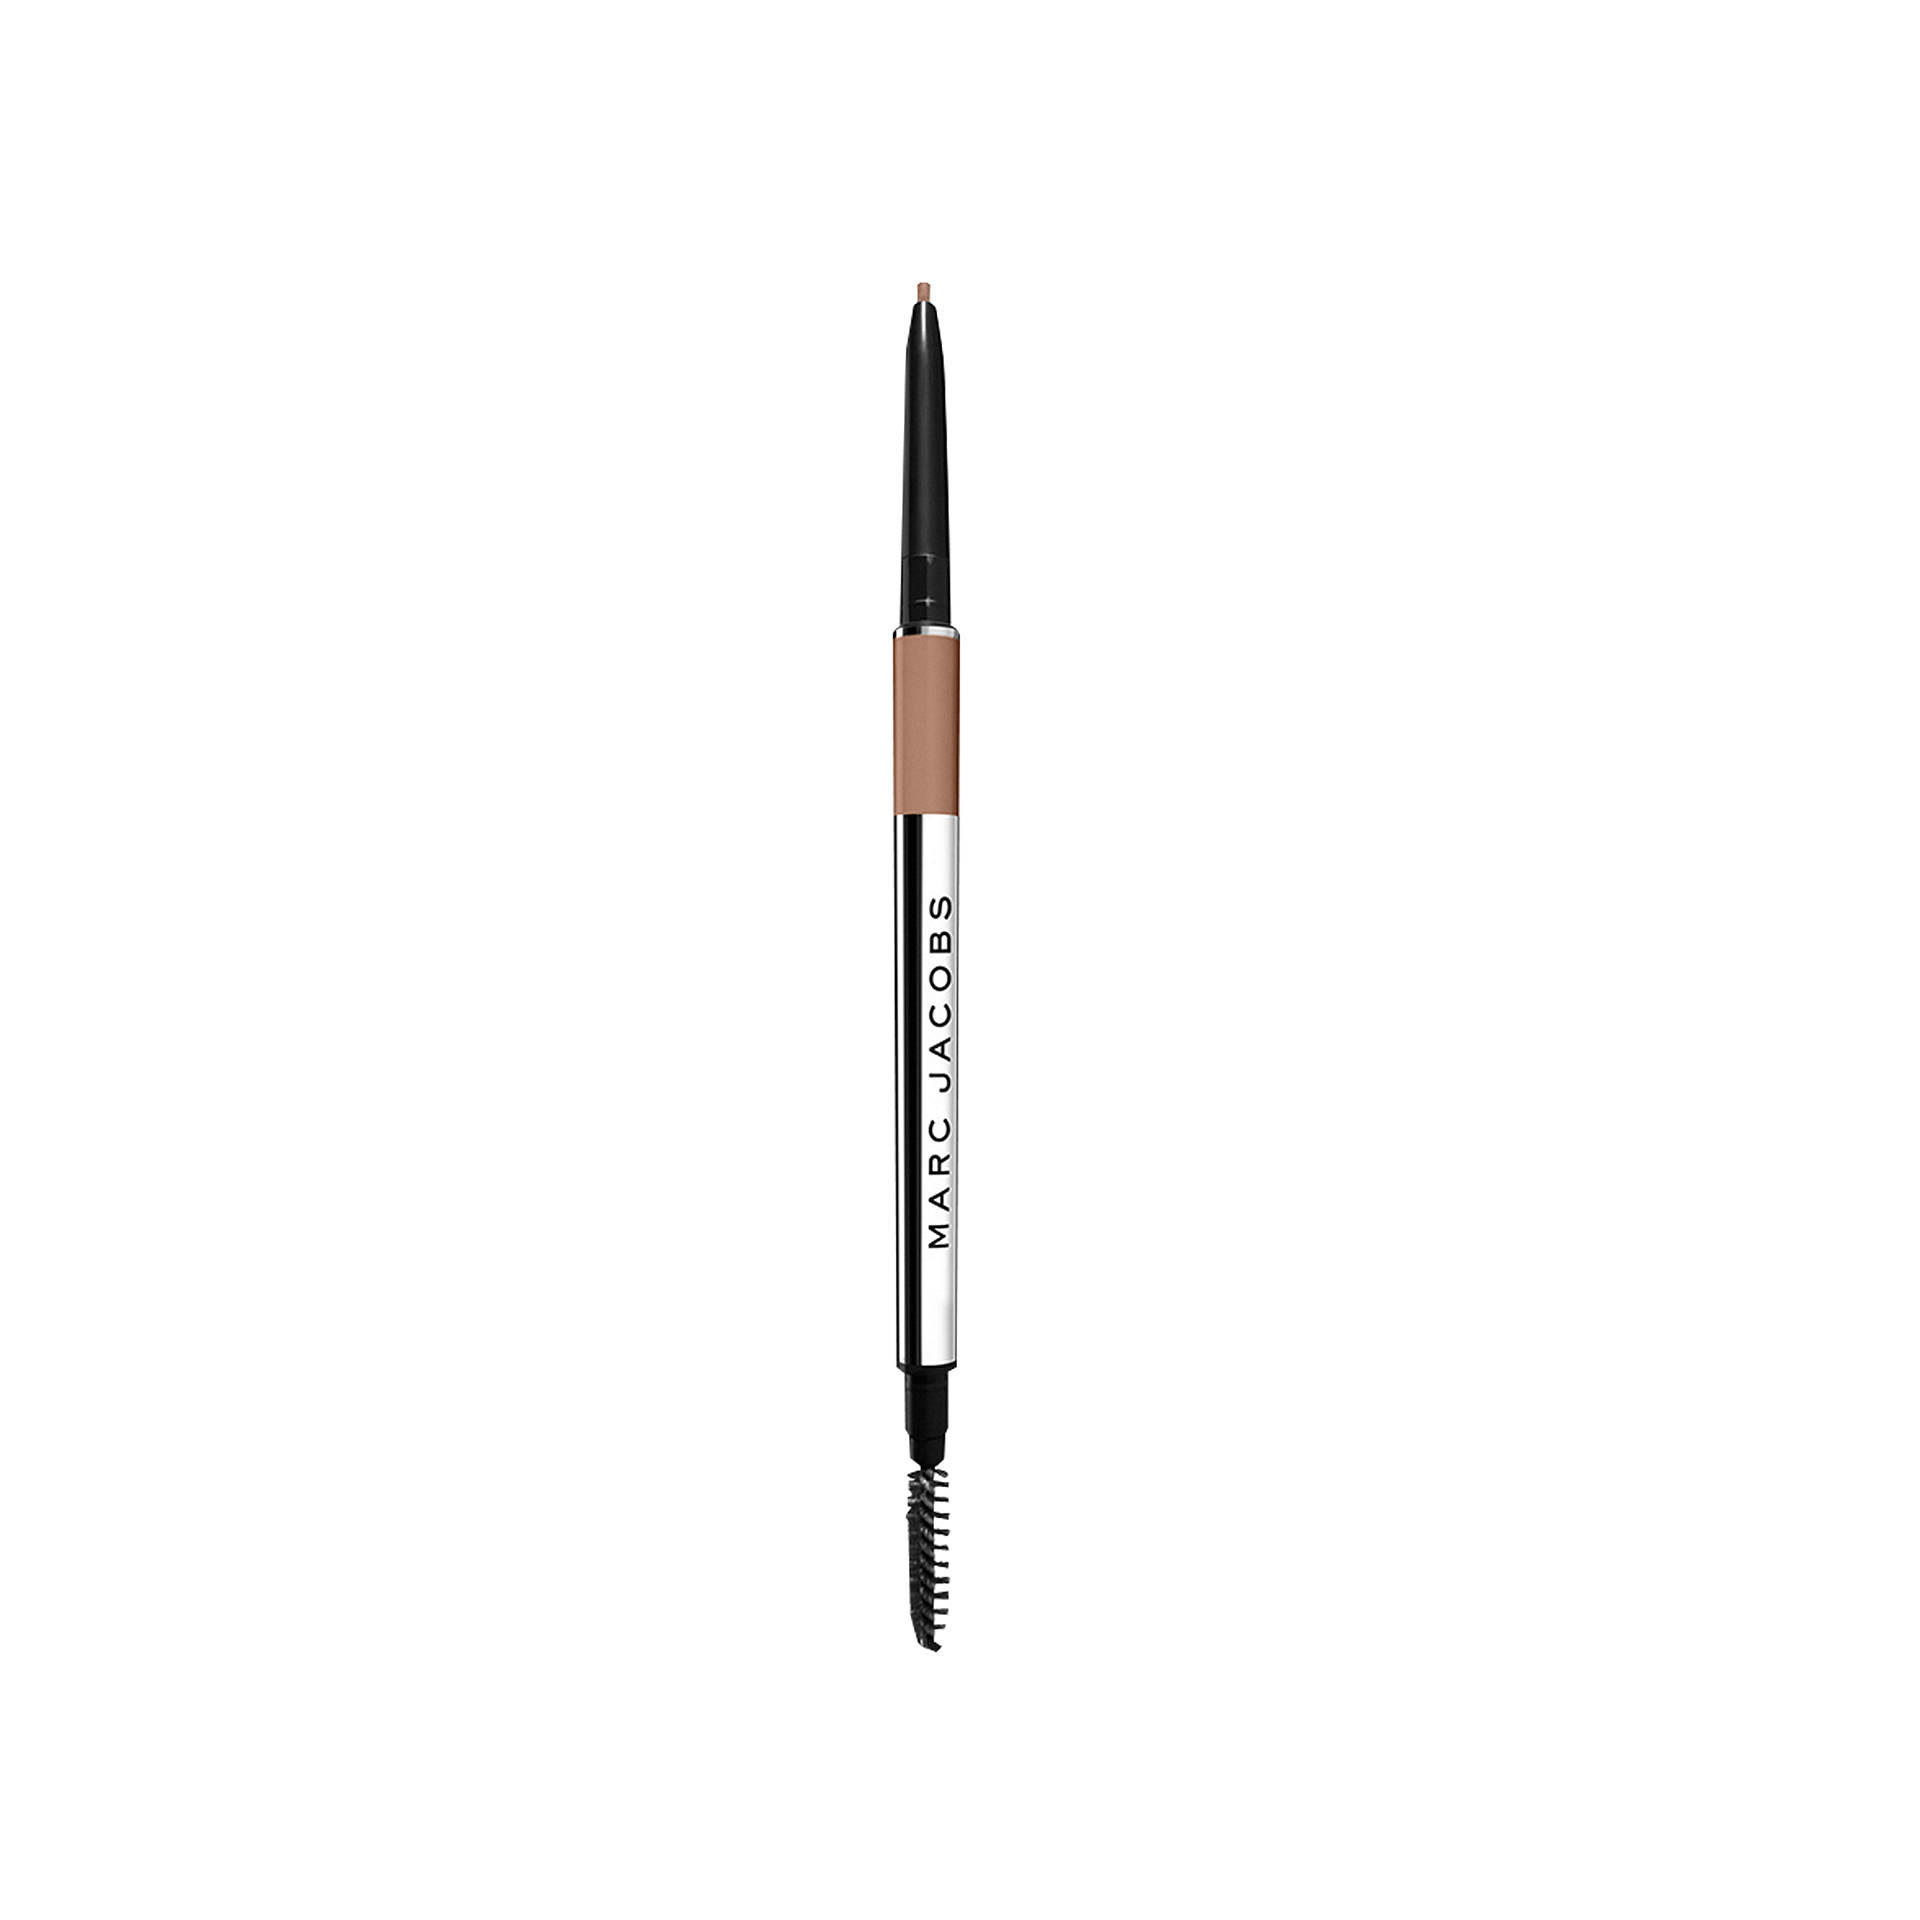 Marc Jacobs Brow Wow Defining Longwear Eyebrow Pencil Taupe